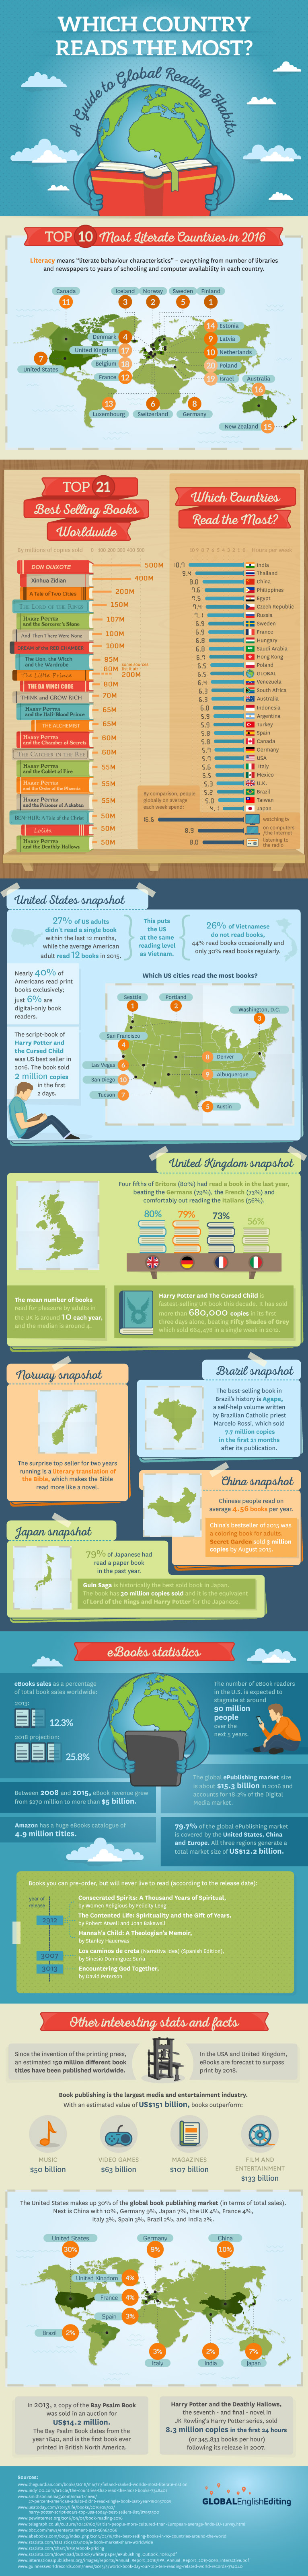 A Guide to Reading Habits Around the World - Infographic